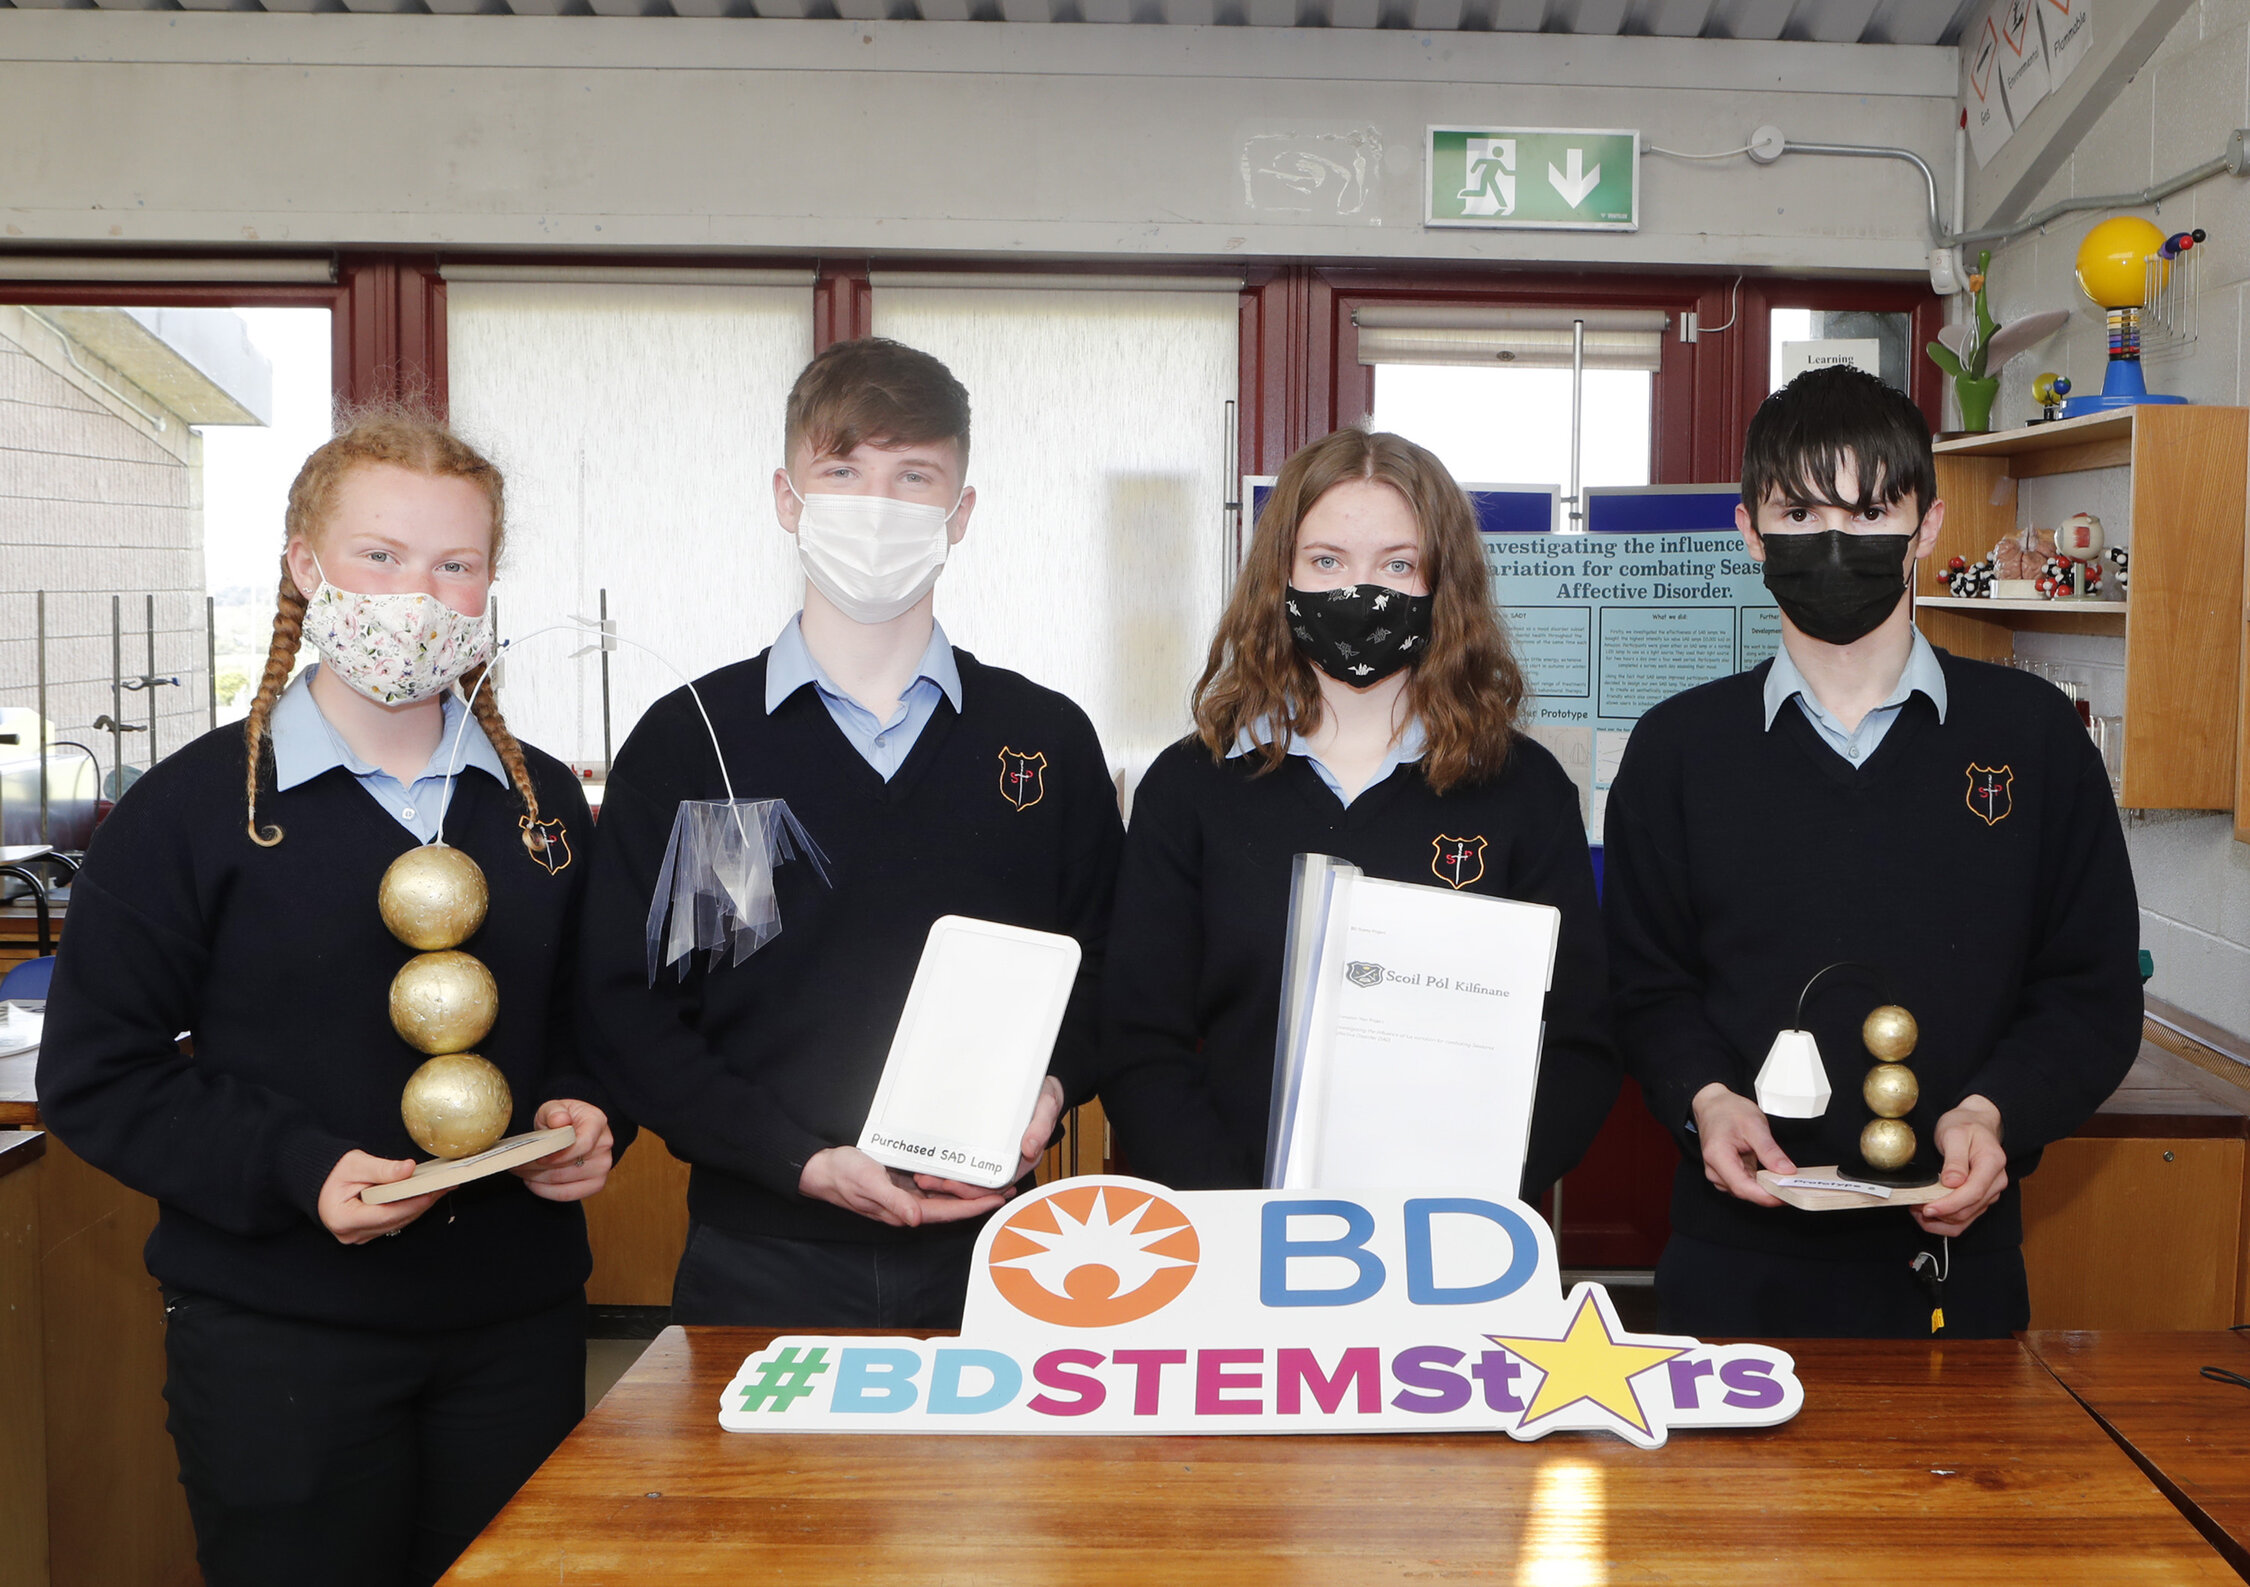 """BD Stem Stars awards - from Scoil Pól, Kilfinane, Co. Limerick all transition year students Leah O'Brien, Chris Costigan, Aisling Daly and Pádraig Brazil Carroll pictured above. The students project is named """"Investigating the influence of Lux variation for combating Seasonal Affective Disorder."""" Picture: Liam Burke/Press 22."""